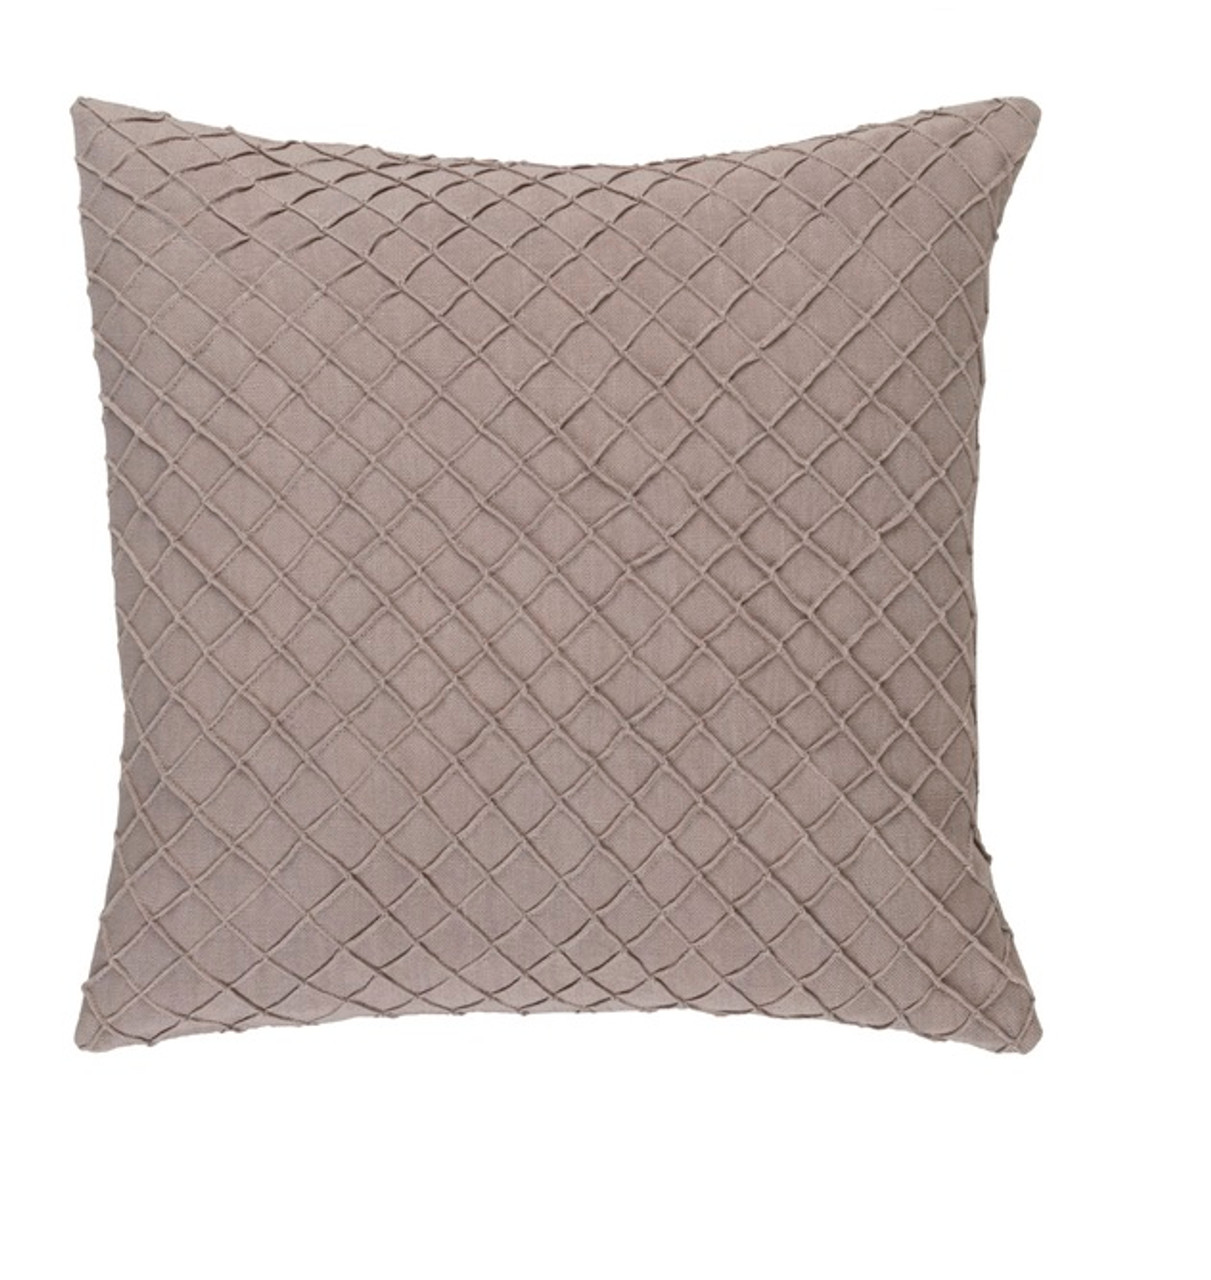 Throw Pillow Fillers : 20? Taupe Brown Woven Decorative Throw Pillow-Down Filler Christmas Central